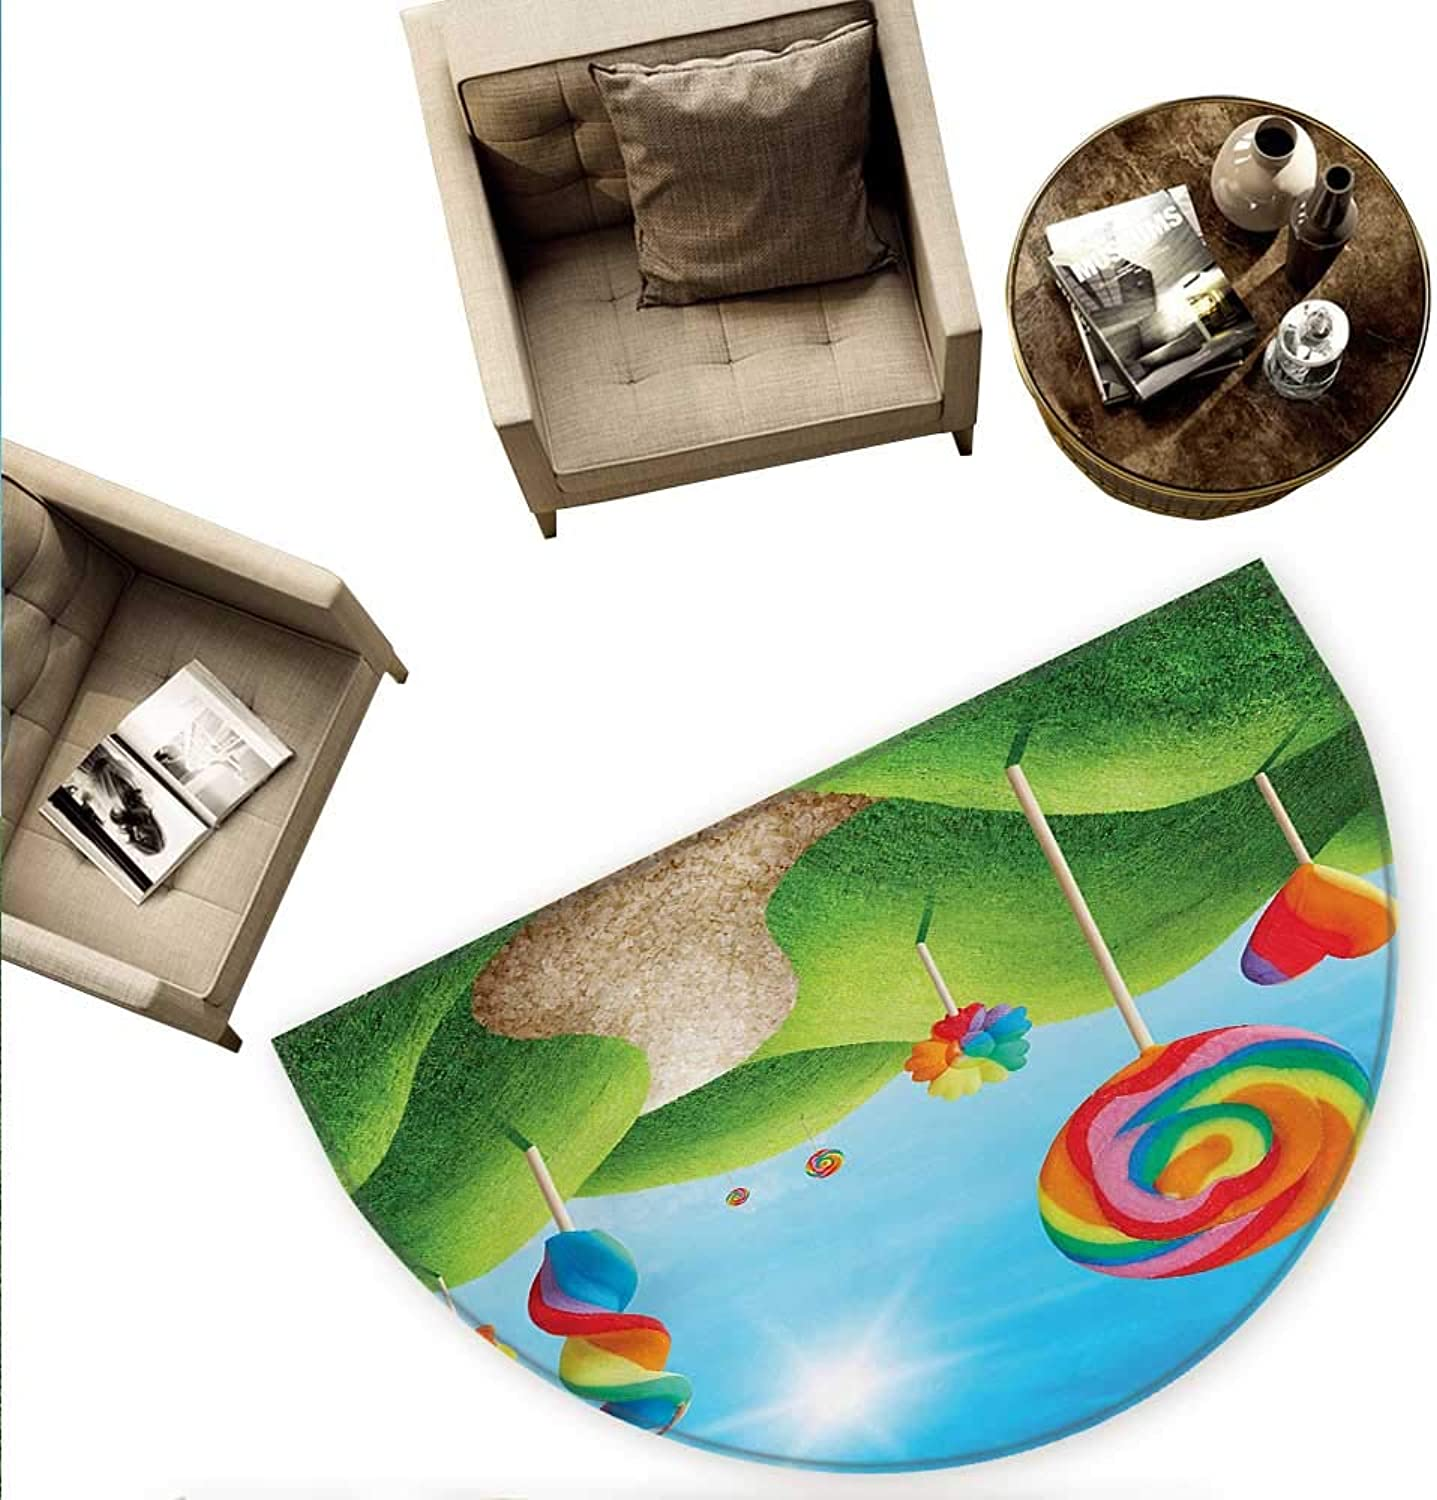 Fantasy Semicircular Cushion Fantasy Candy Land with Delicious Lollipops and Sweets Sun Cheerful Fun Print Entry Door Mat H 70.8  xD 106.3  Green bluee Red